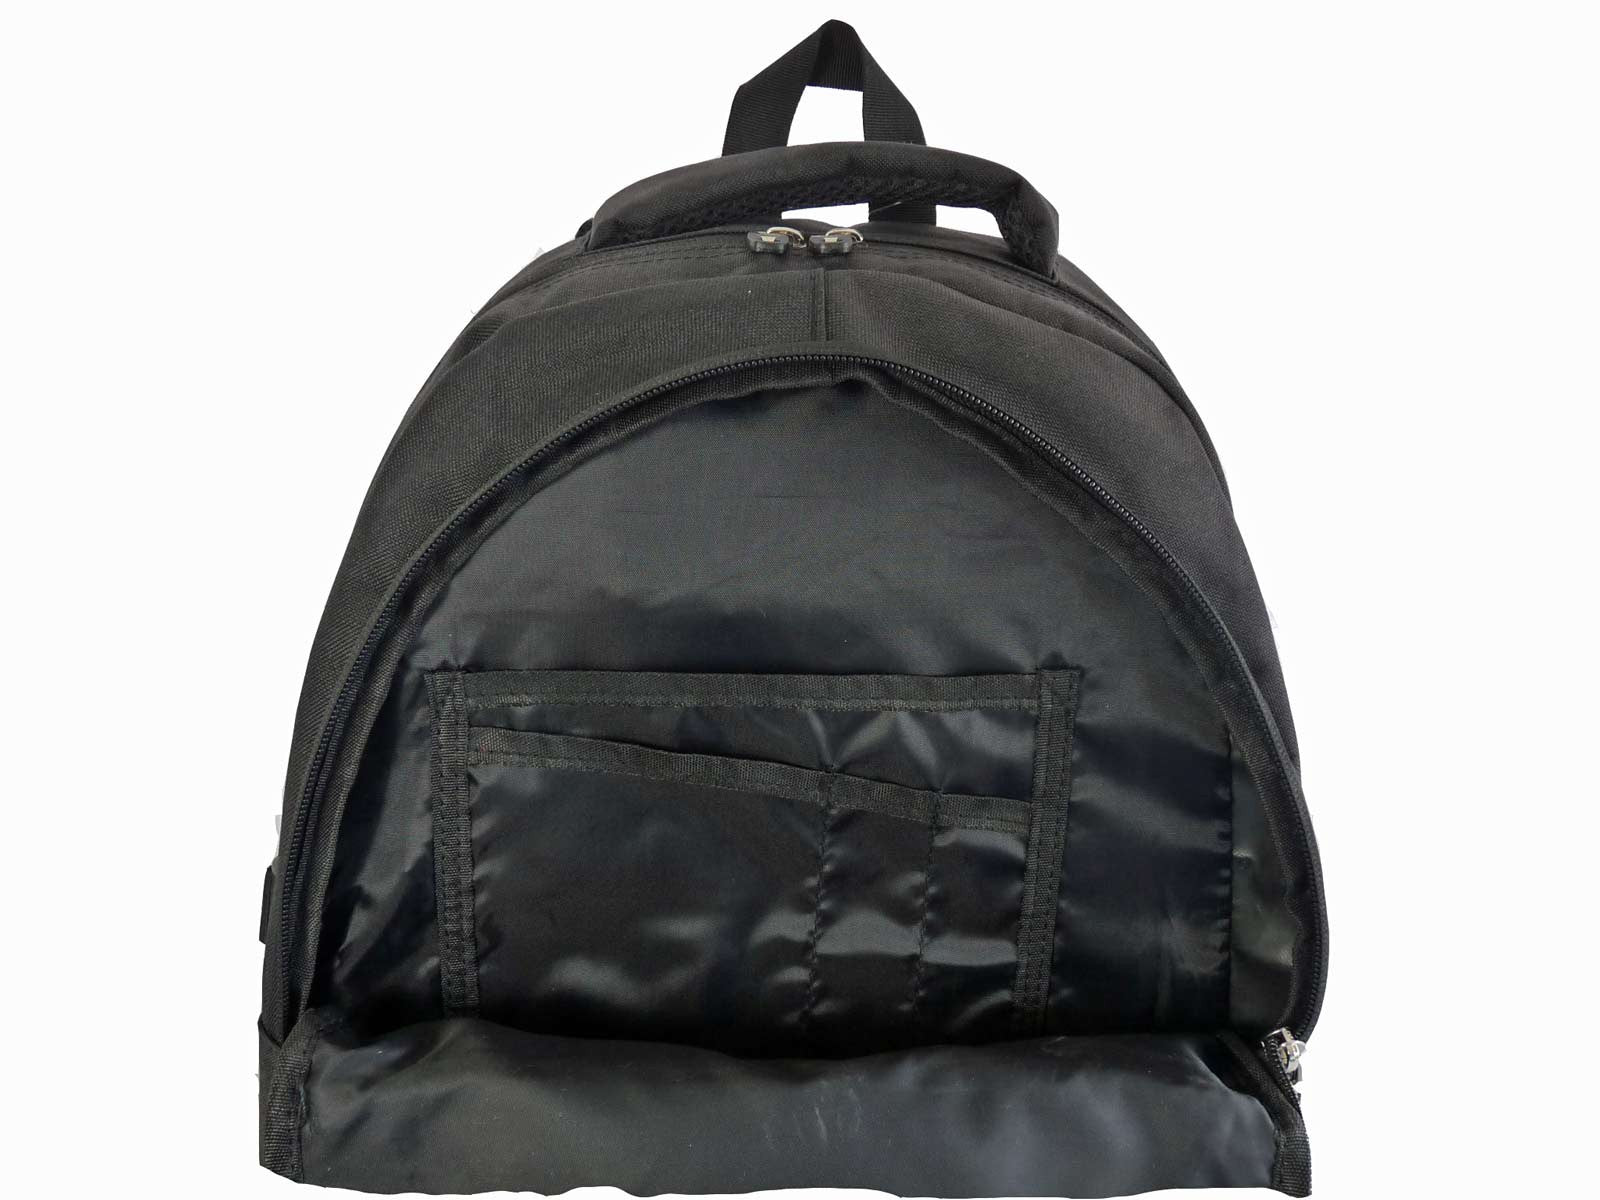 Laptop Macbook Backpack Rucksack Bag RL43K Inside View